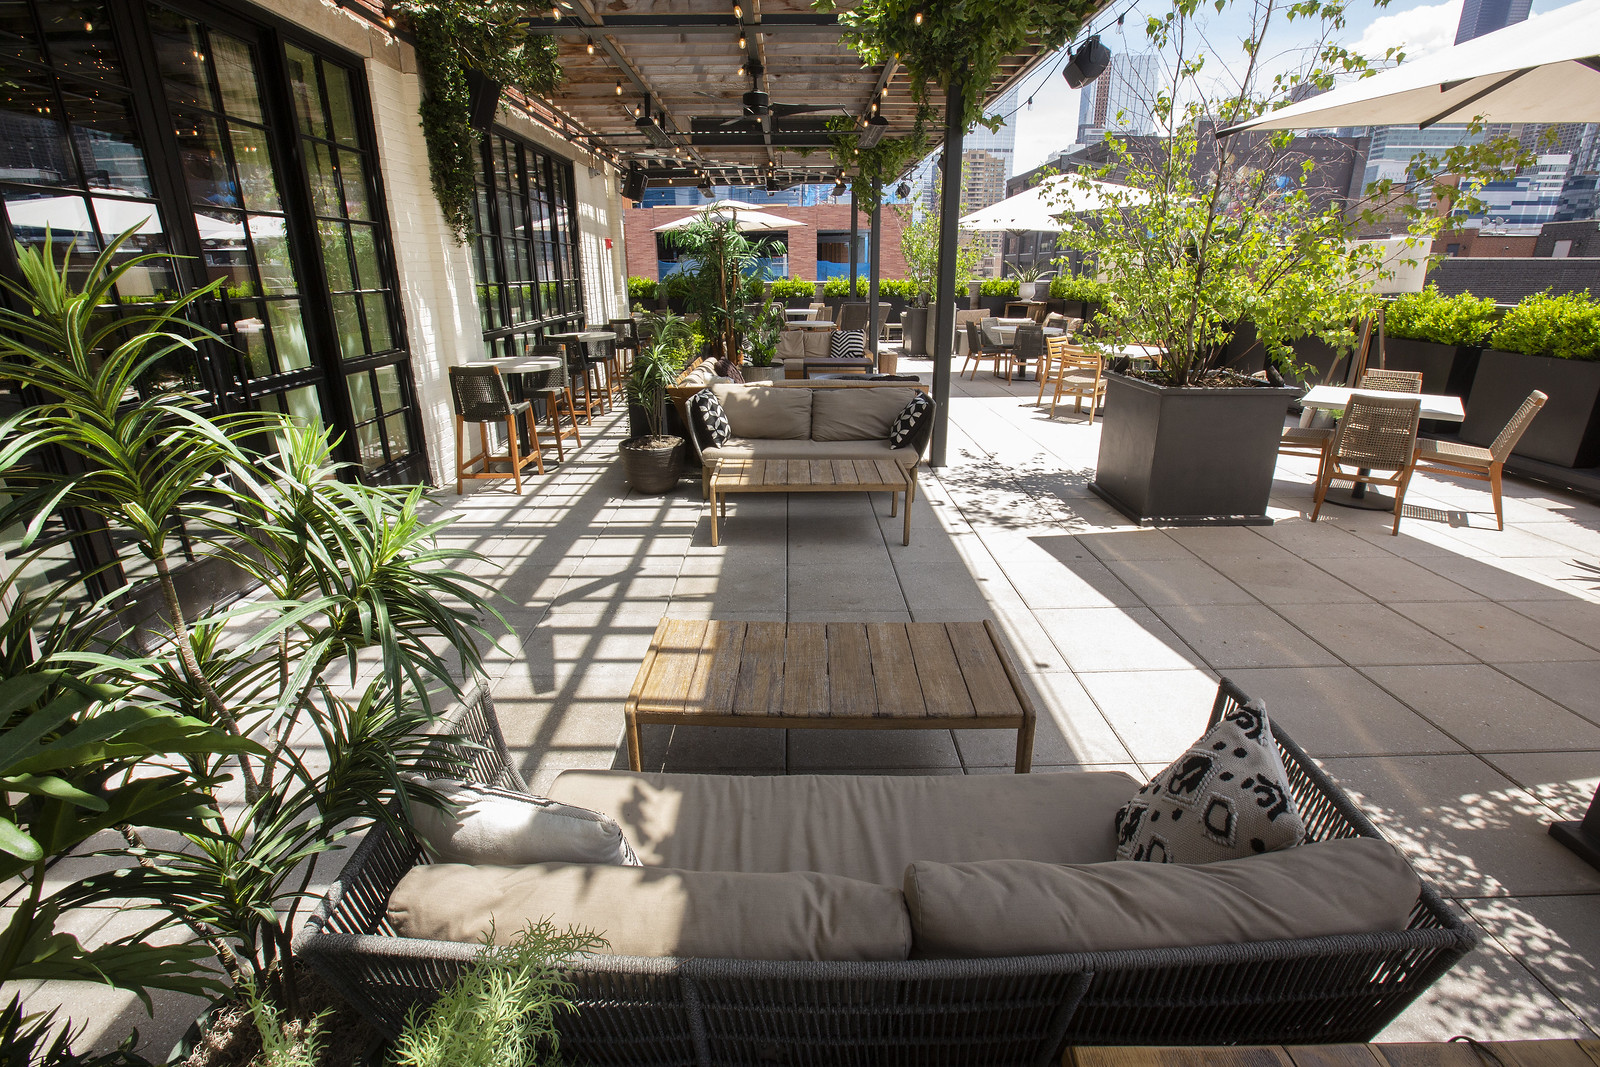 A patio with greenery.